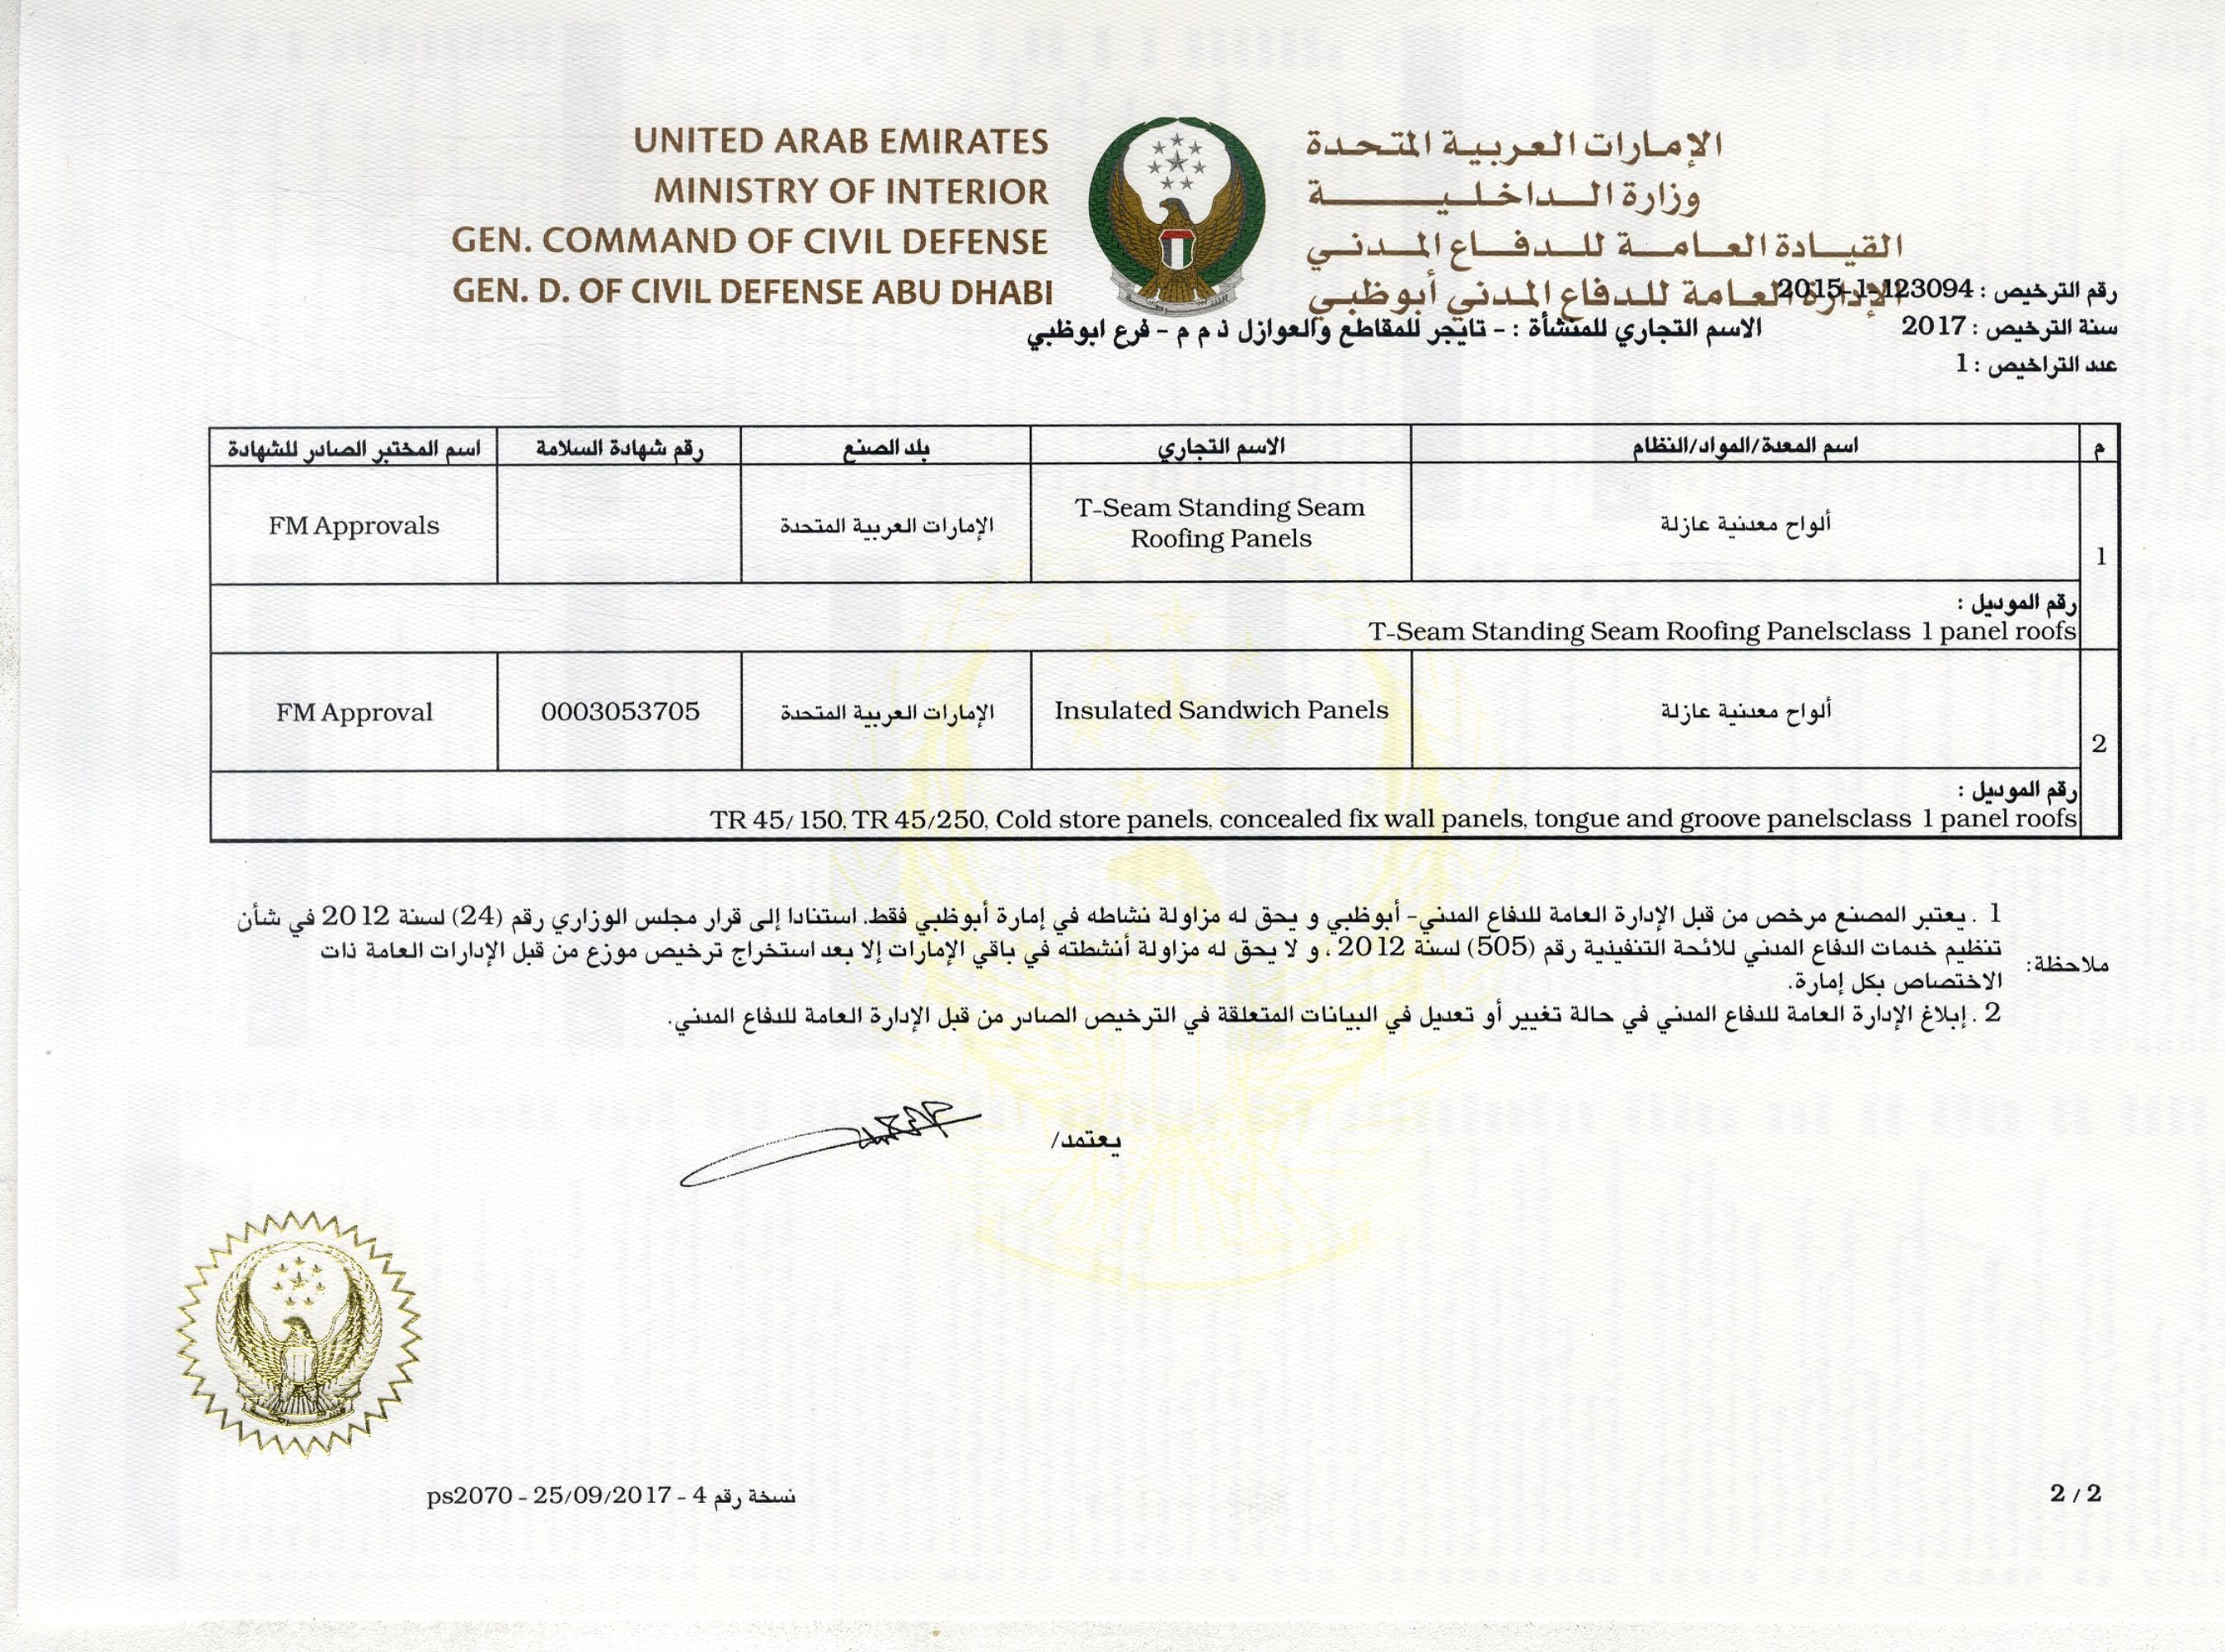 Abu Dhabi Civil Defense Approval